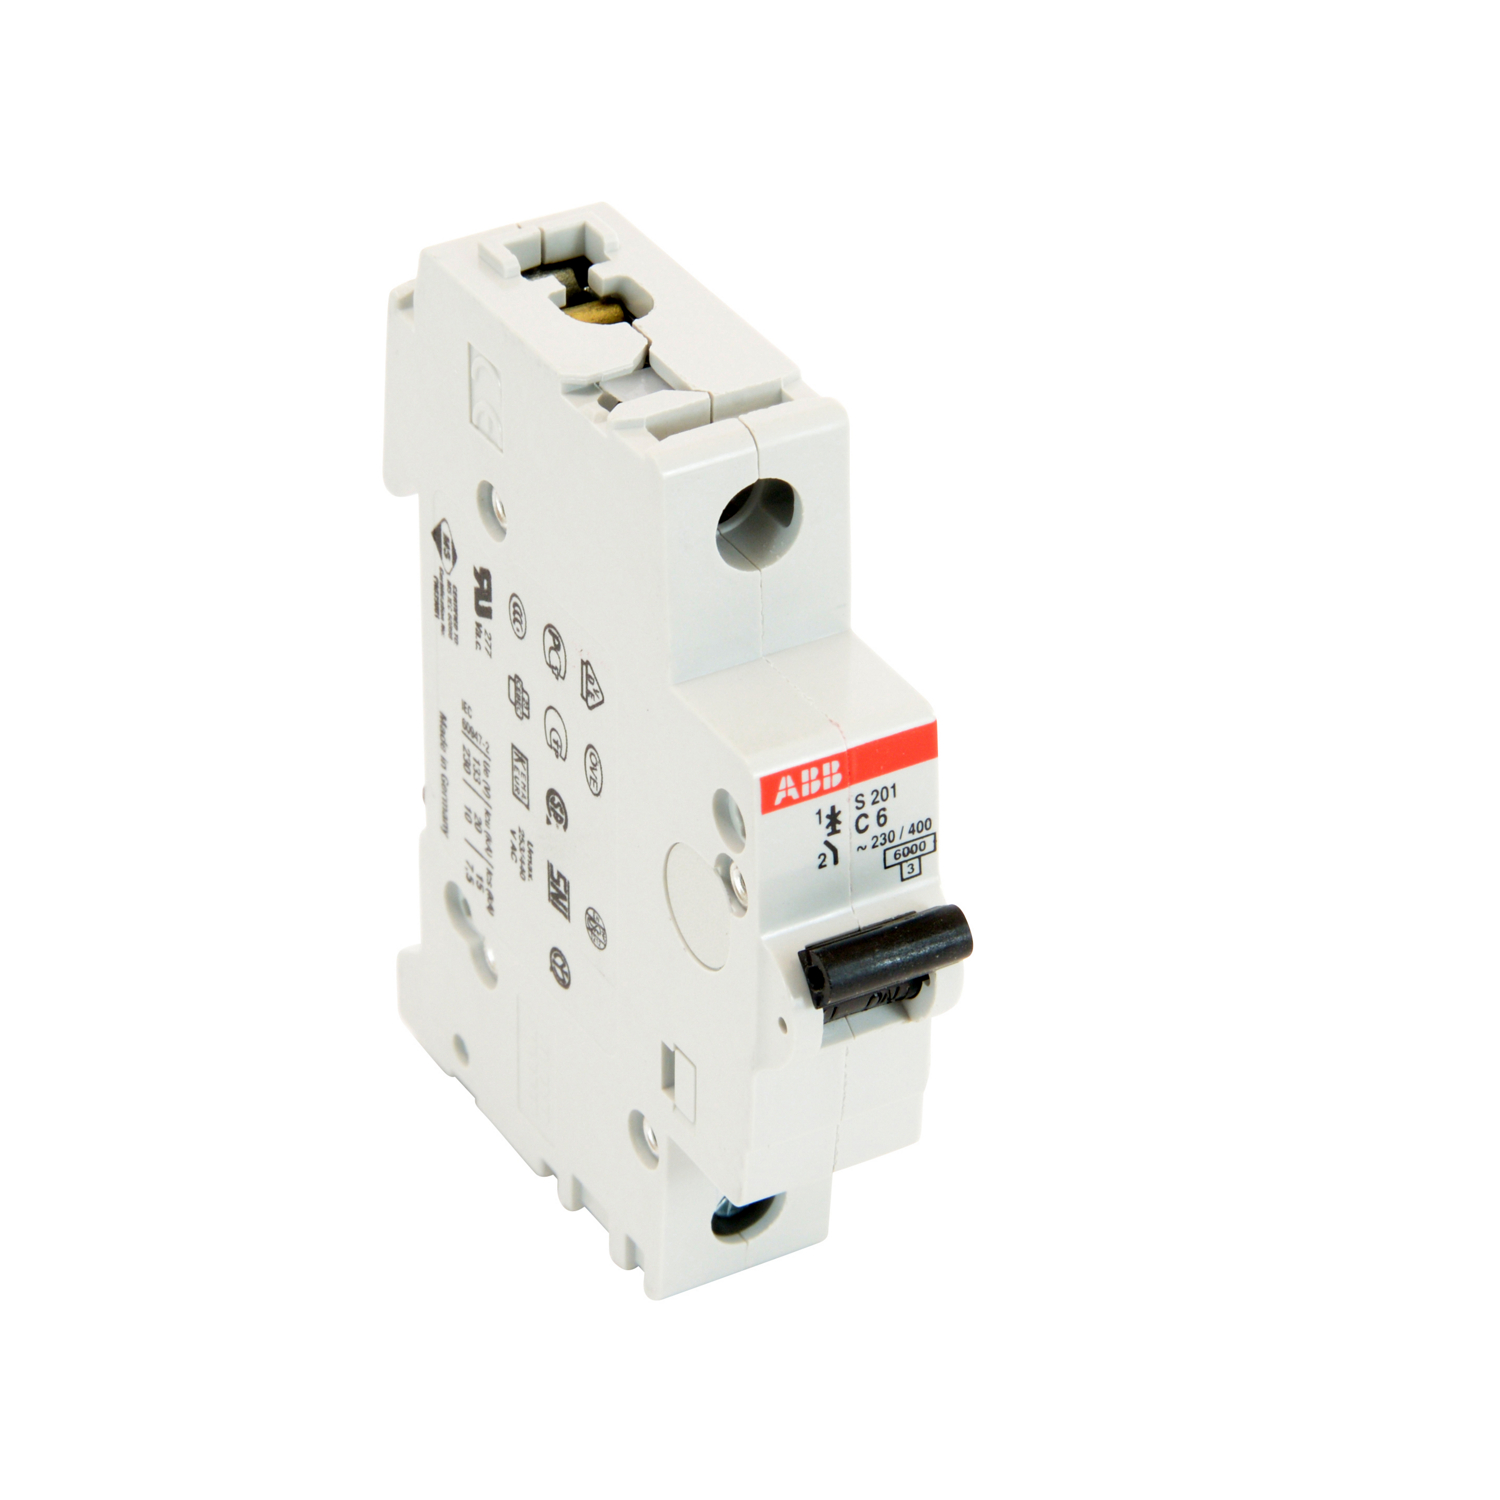 ABB S201-C6 1 pole, 6 amp rated at 480Y/277 VAC, UL 1077 series miniature circuit breaker with thermal-magnetic trip device, C trip curve, and 6kA interrupt current rating